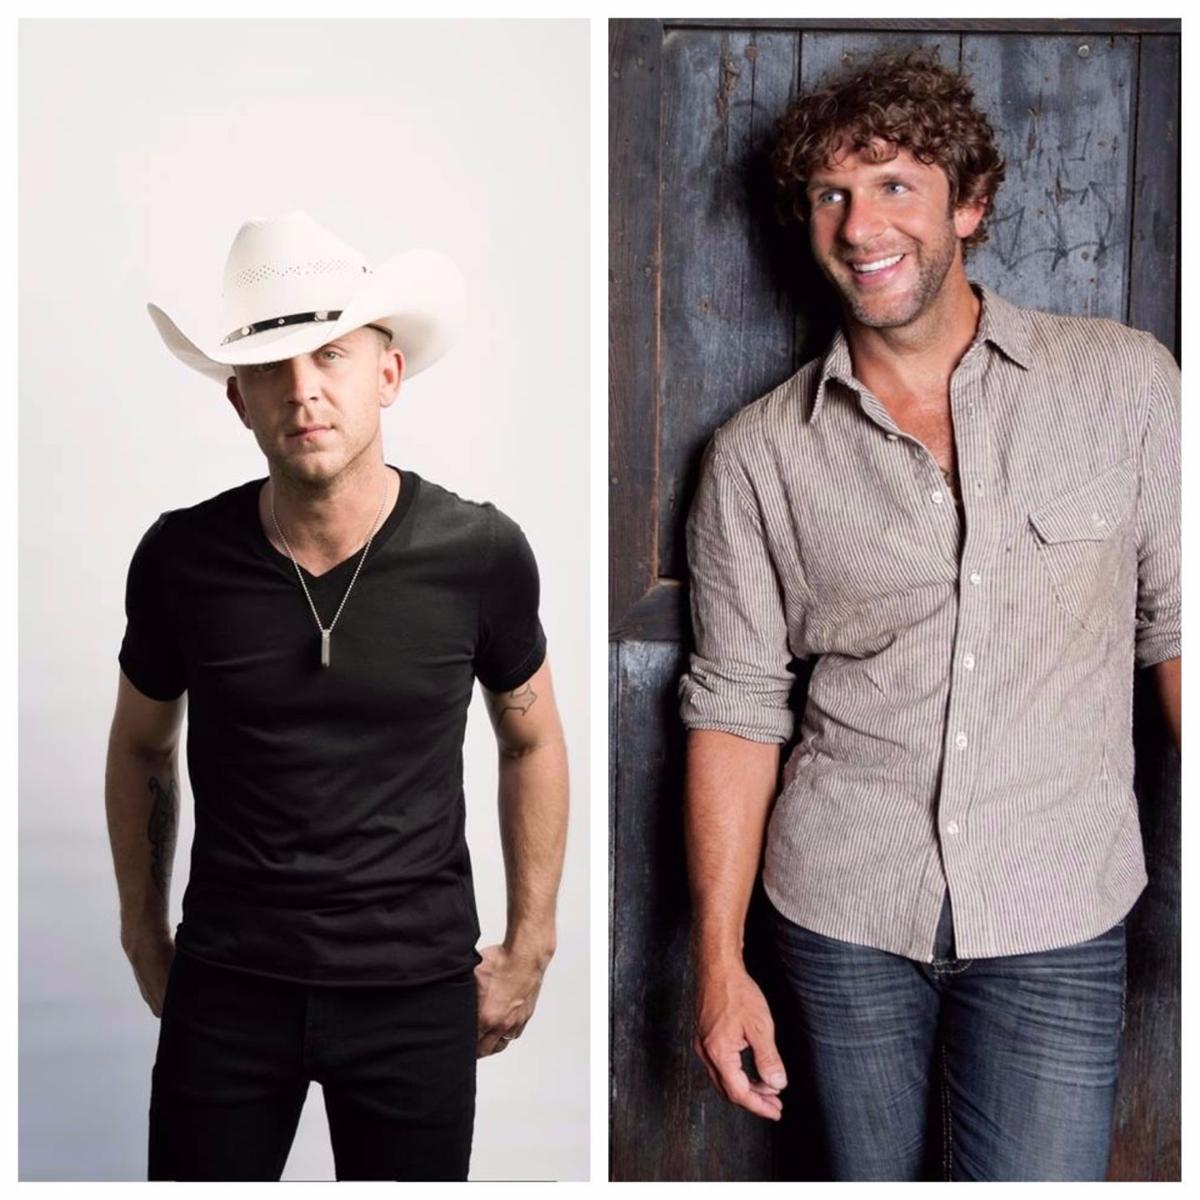 Billy Currington And Justin Moore To Play Mississippi Valley Fair